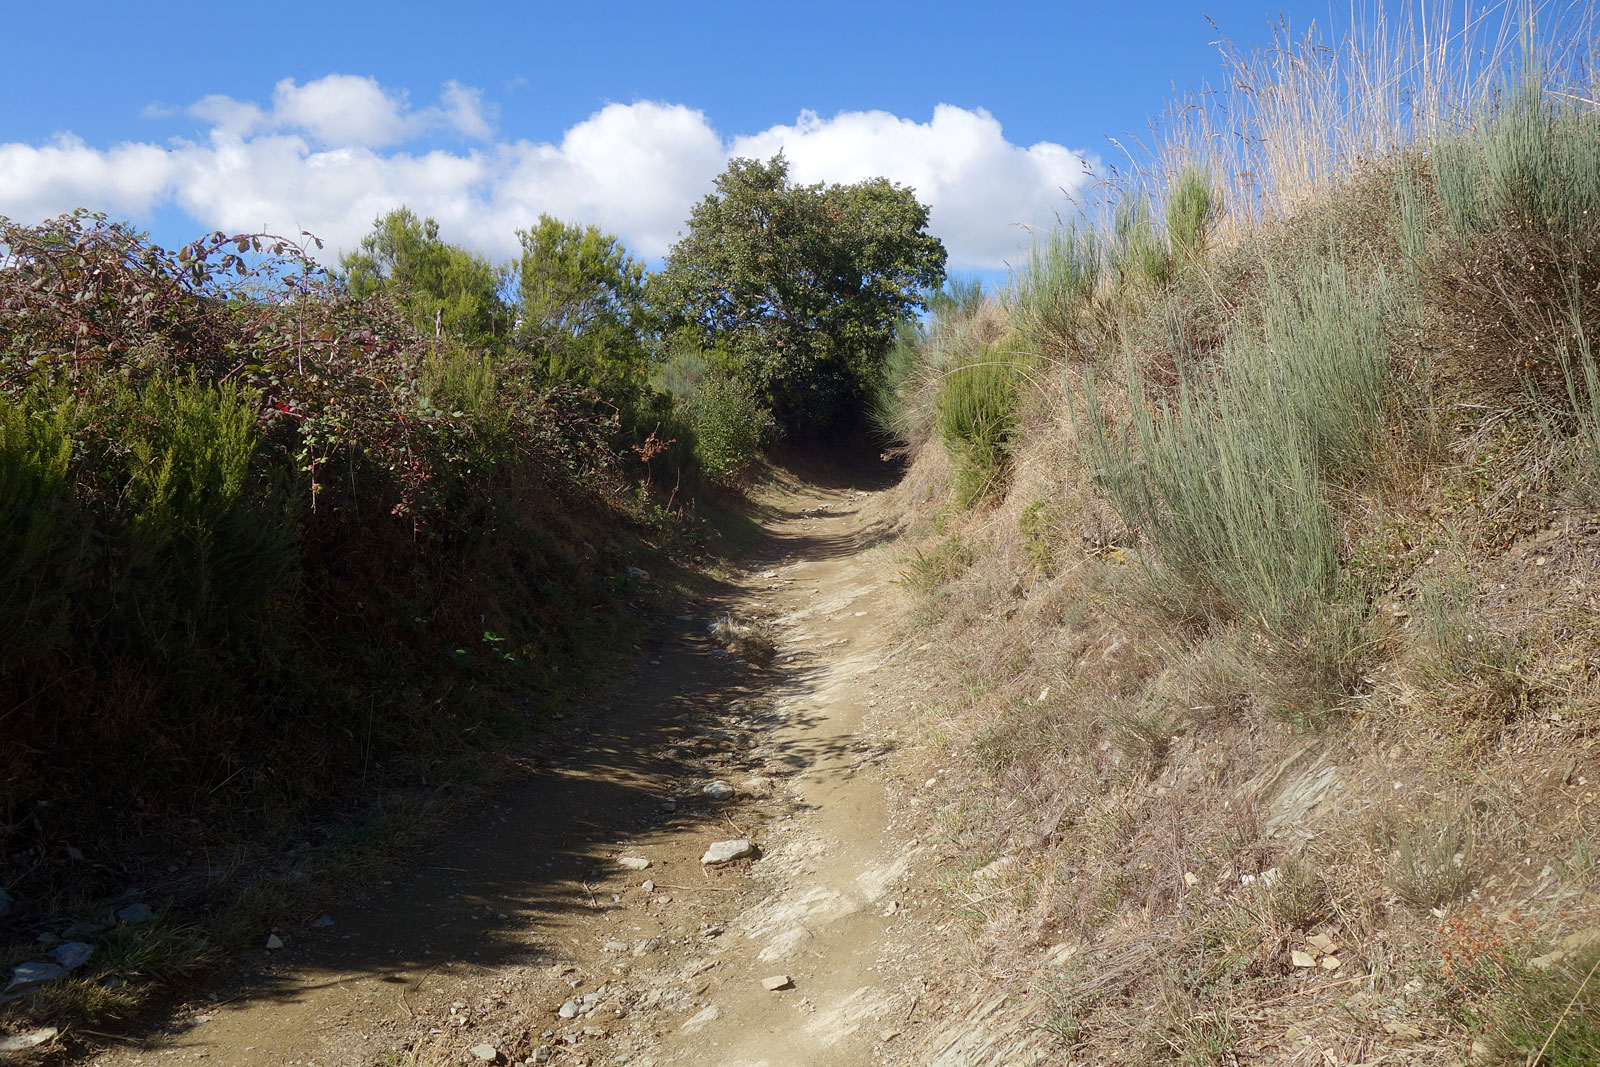 Sort of rugged Camino path near Leon